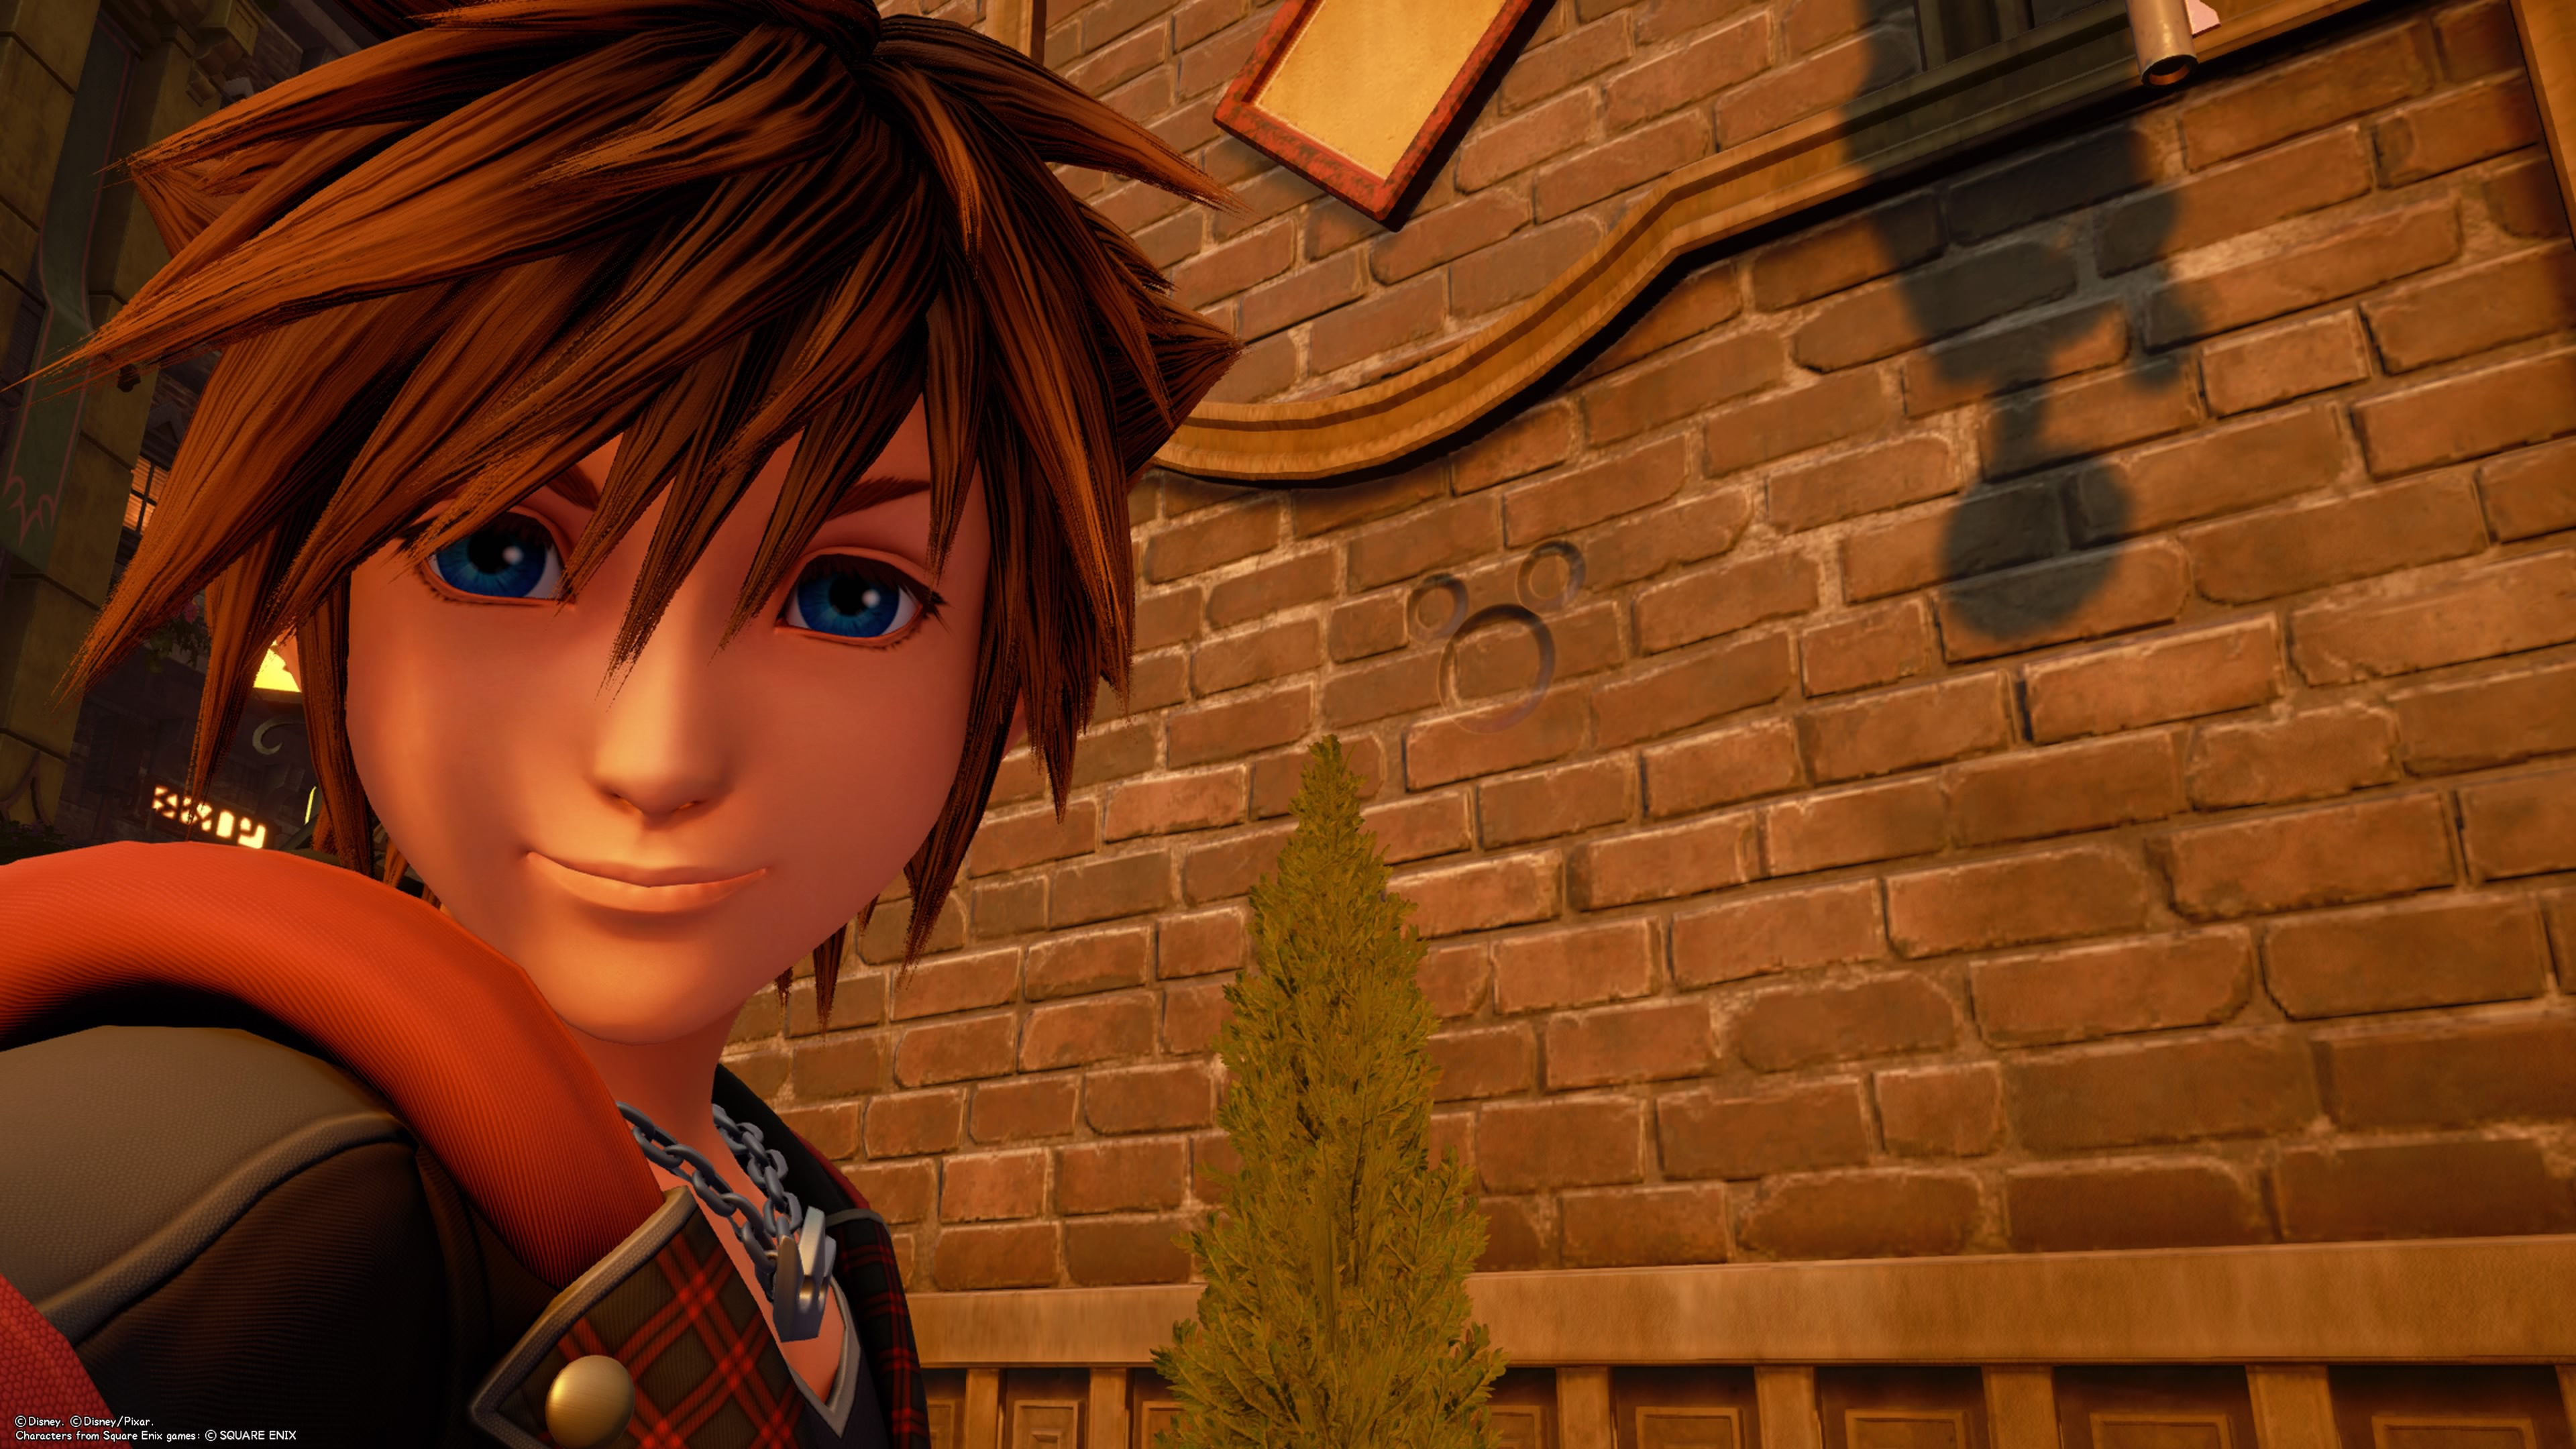 Kingdom Hearts 3 Secret Ending How To Unlock The Secret Movie With